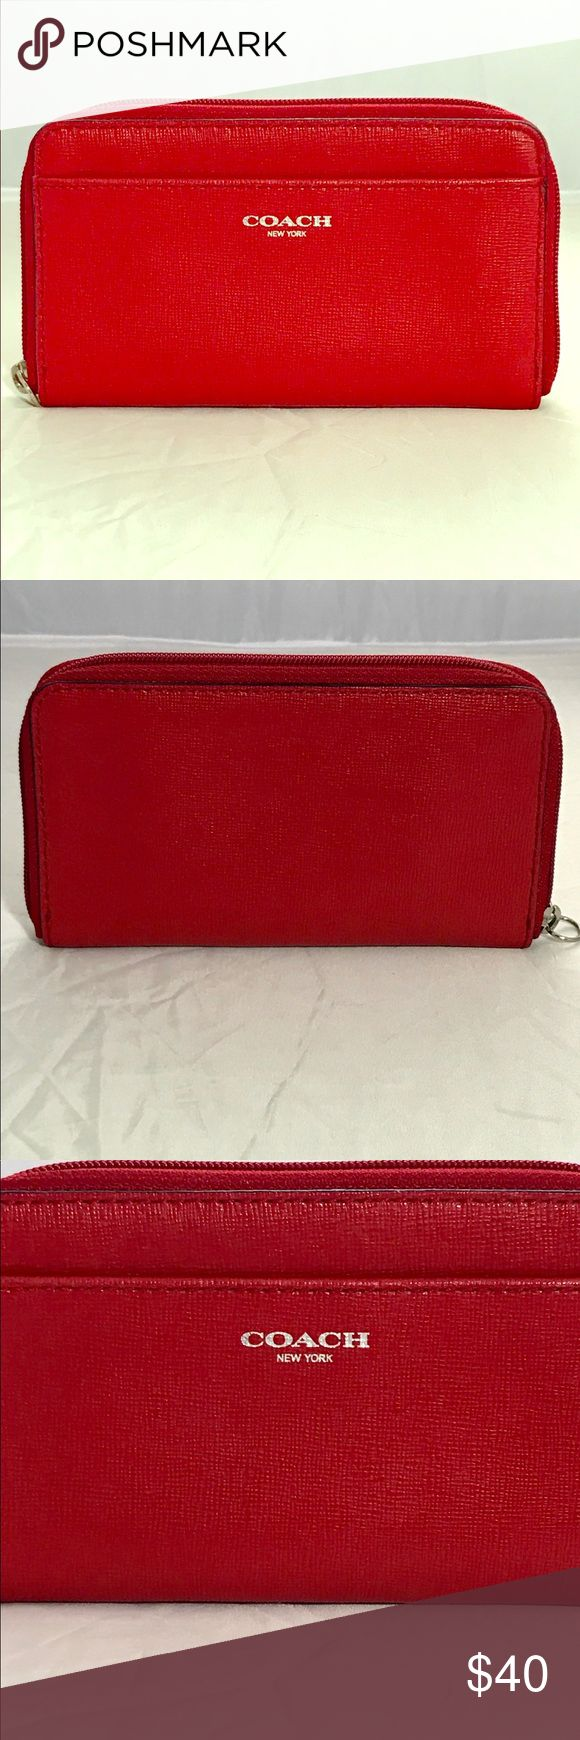 COACH LEGACY RED LEATHER EW UNIVERSAL case/wallet COACH LEGACY SAFFIANO RED LEATHER EW UNIVERSAL CASE Wallet/wristlet 64976  Vguc except it's missing the strap that makes it a wristlet so I guess that makes it a wallet/phone case instead:-) Sf home   Please feel free to message me if you have any questions, flexible on price. Coach Bags Wallets